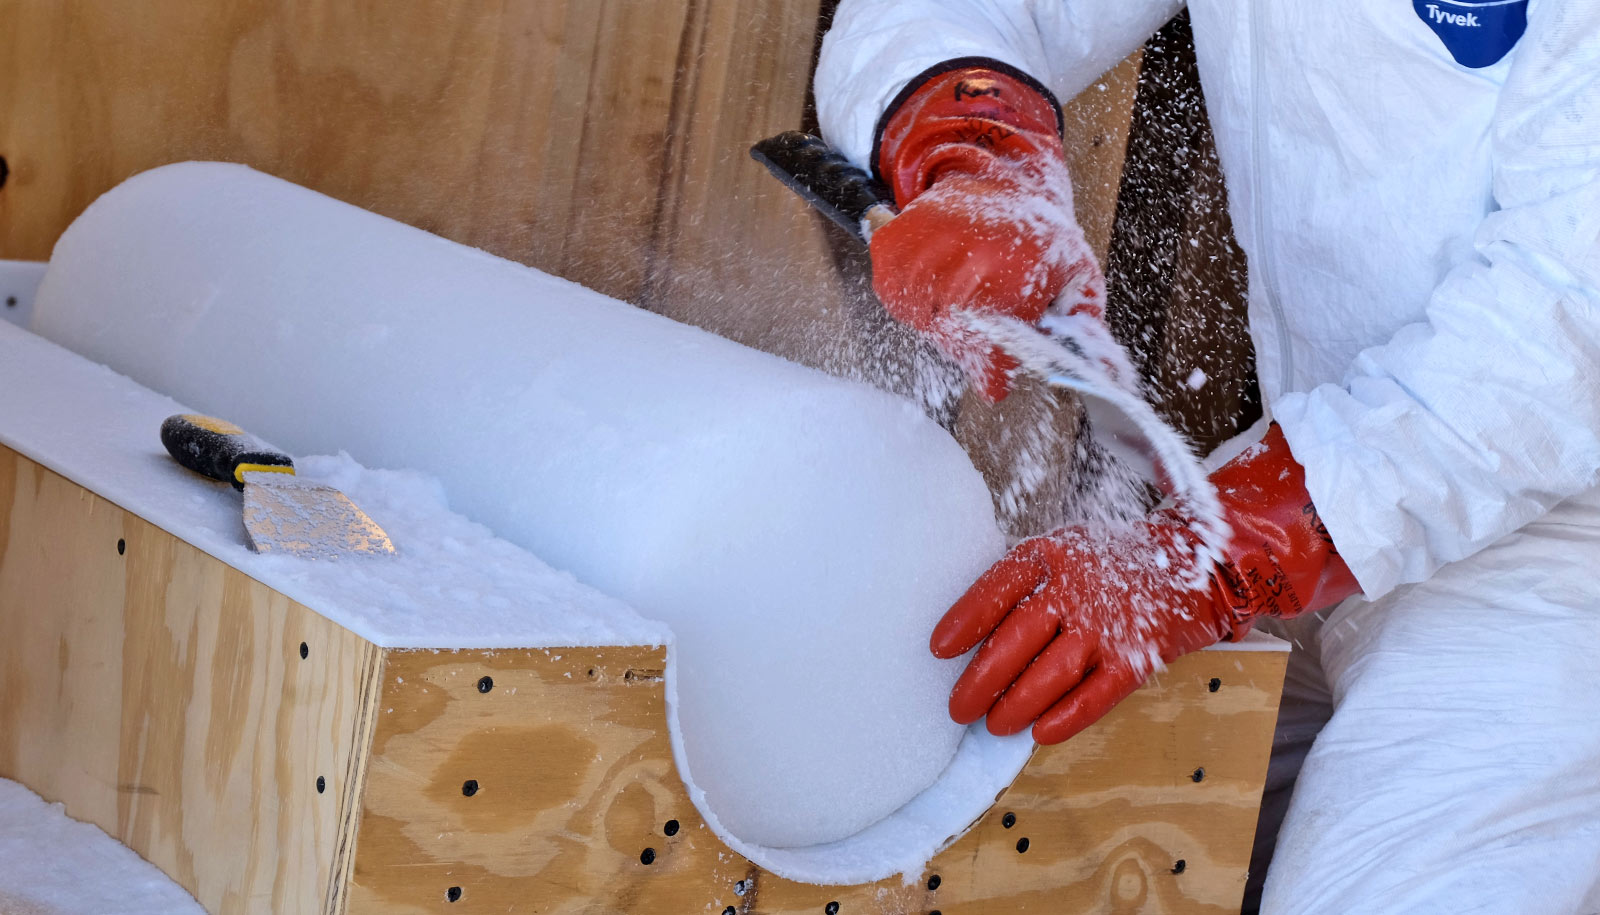 gloved hands use tool to scrape ice core in wooden holder